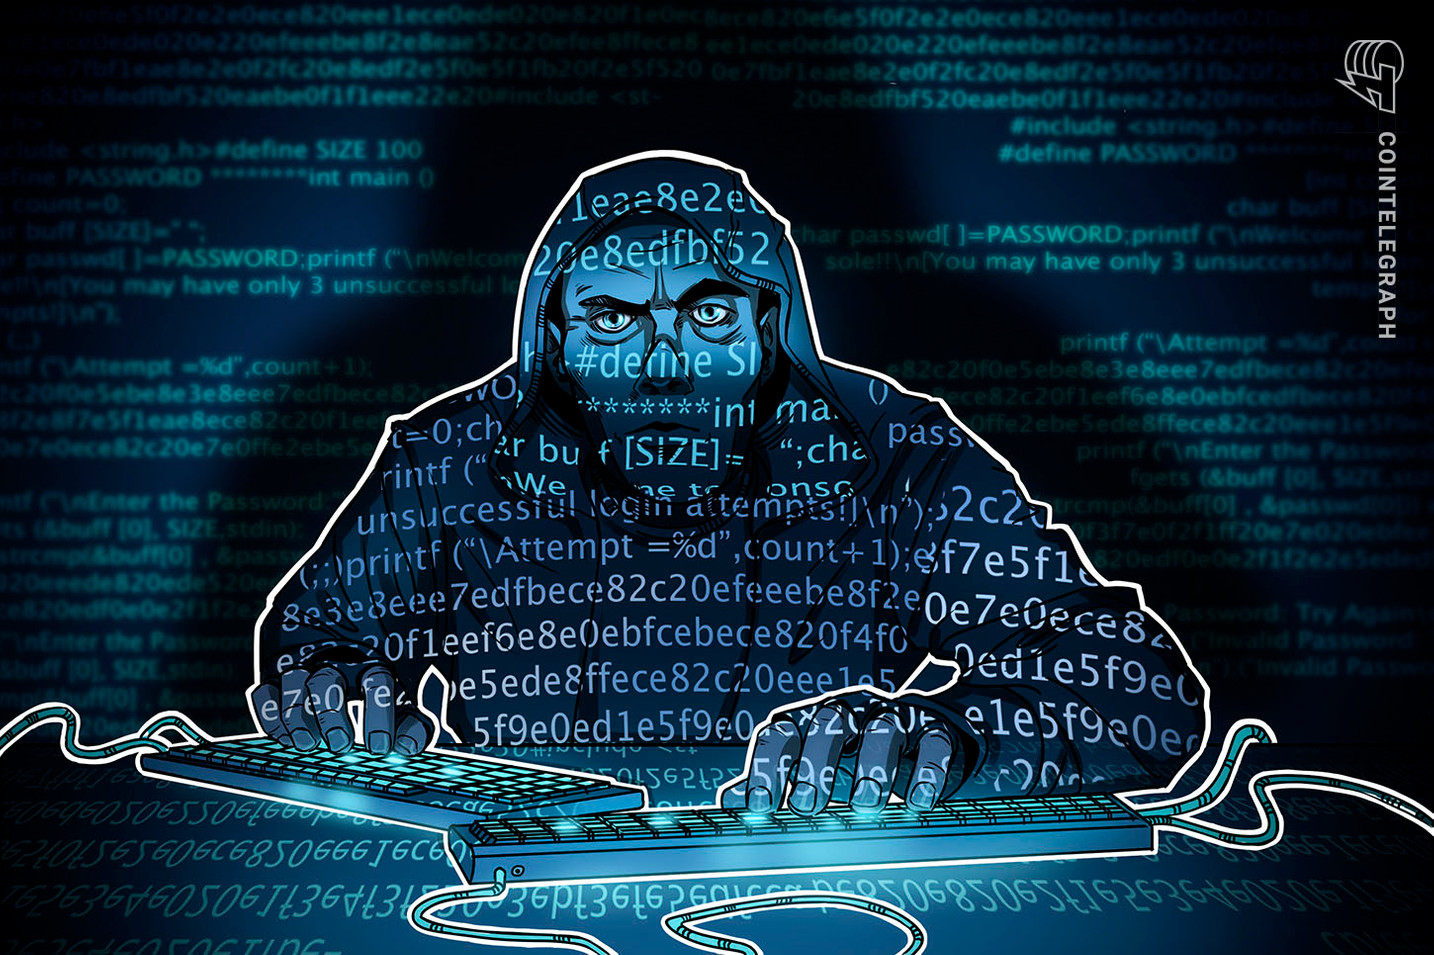 Self-Proclaimed Binance Hacker Warns: New Wave of Data Leaks Is Coming